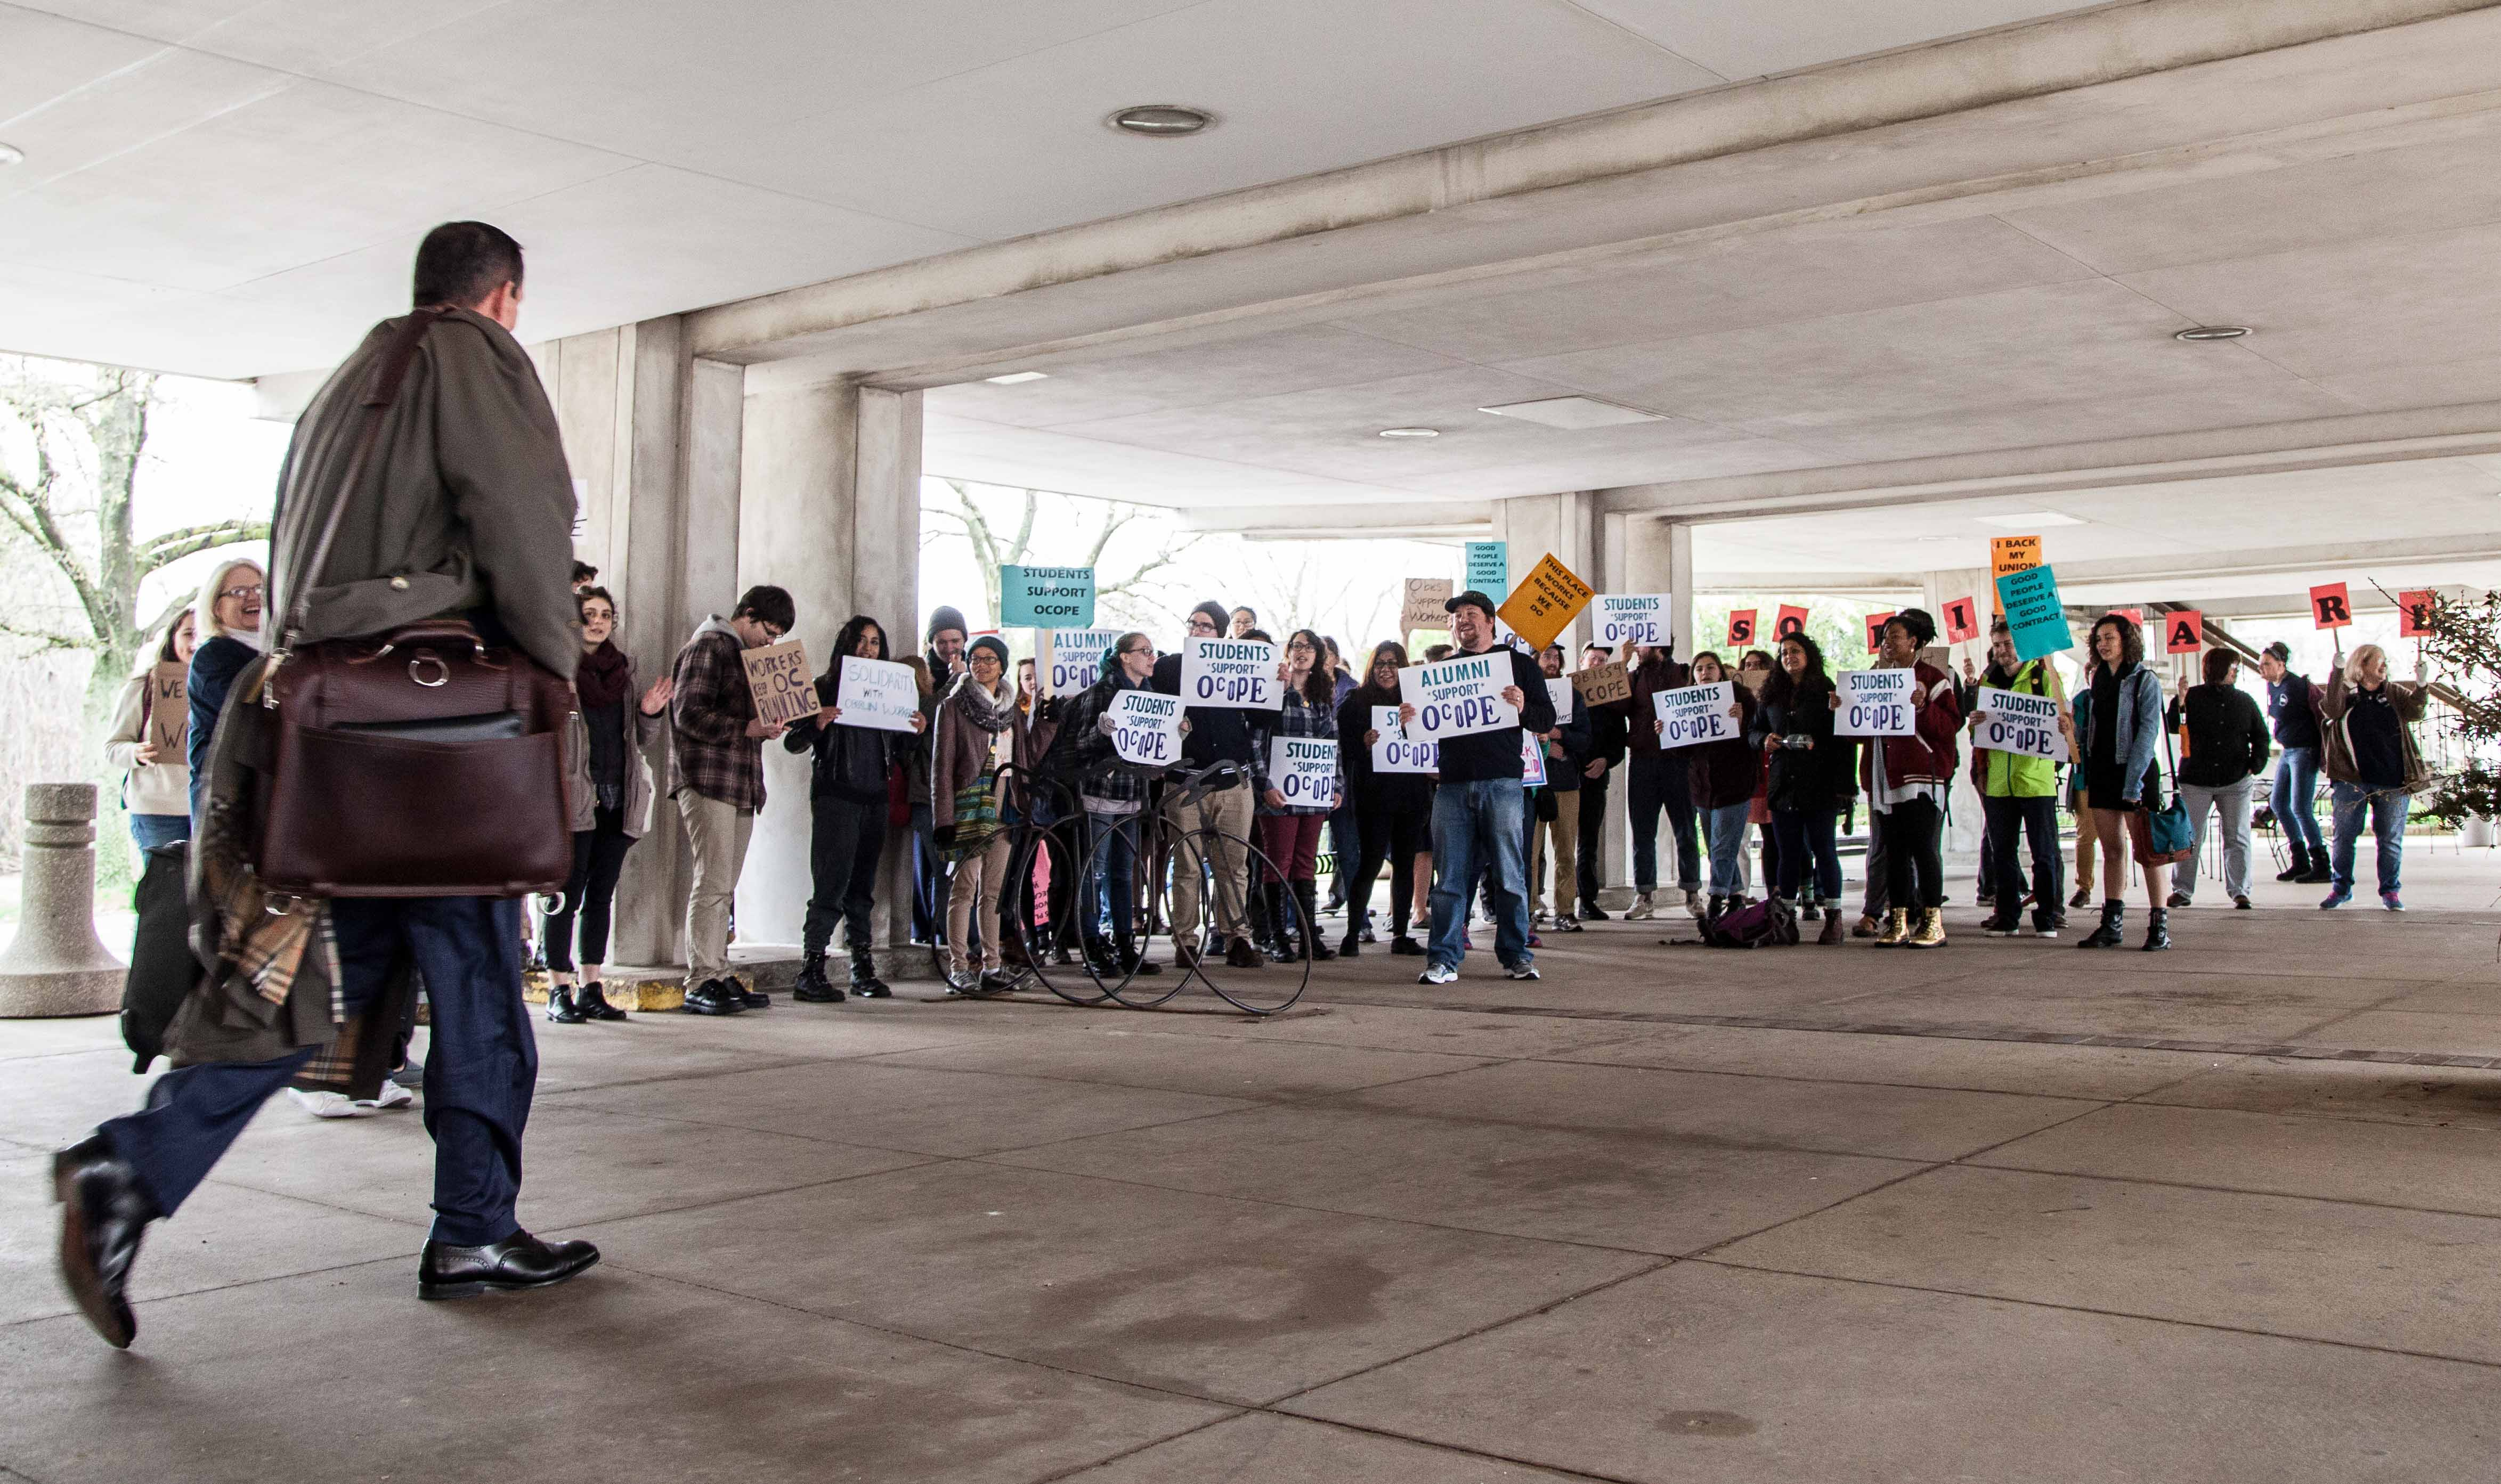 Michael J. Frantz, of Cleveland firm Frantz Ward LLP, leaves negotiations with OCOPE Friday afternoon as protestors line the exit route. The labor union, which represents 190 campus workers, is undergoing contract negotiations with administrators until June 30.